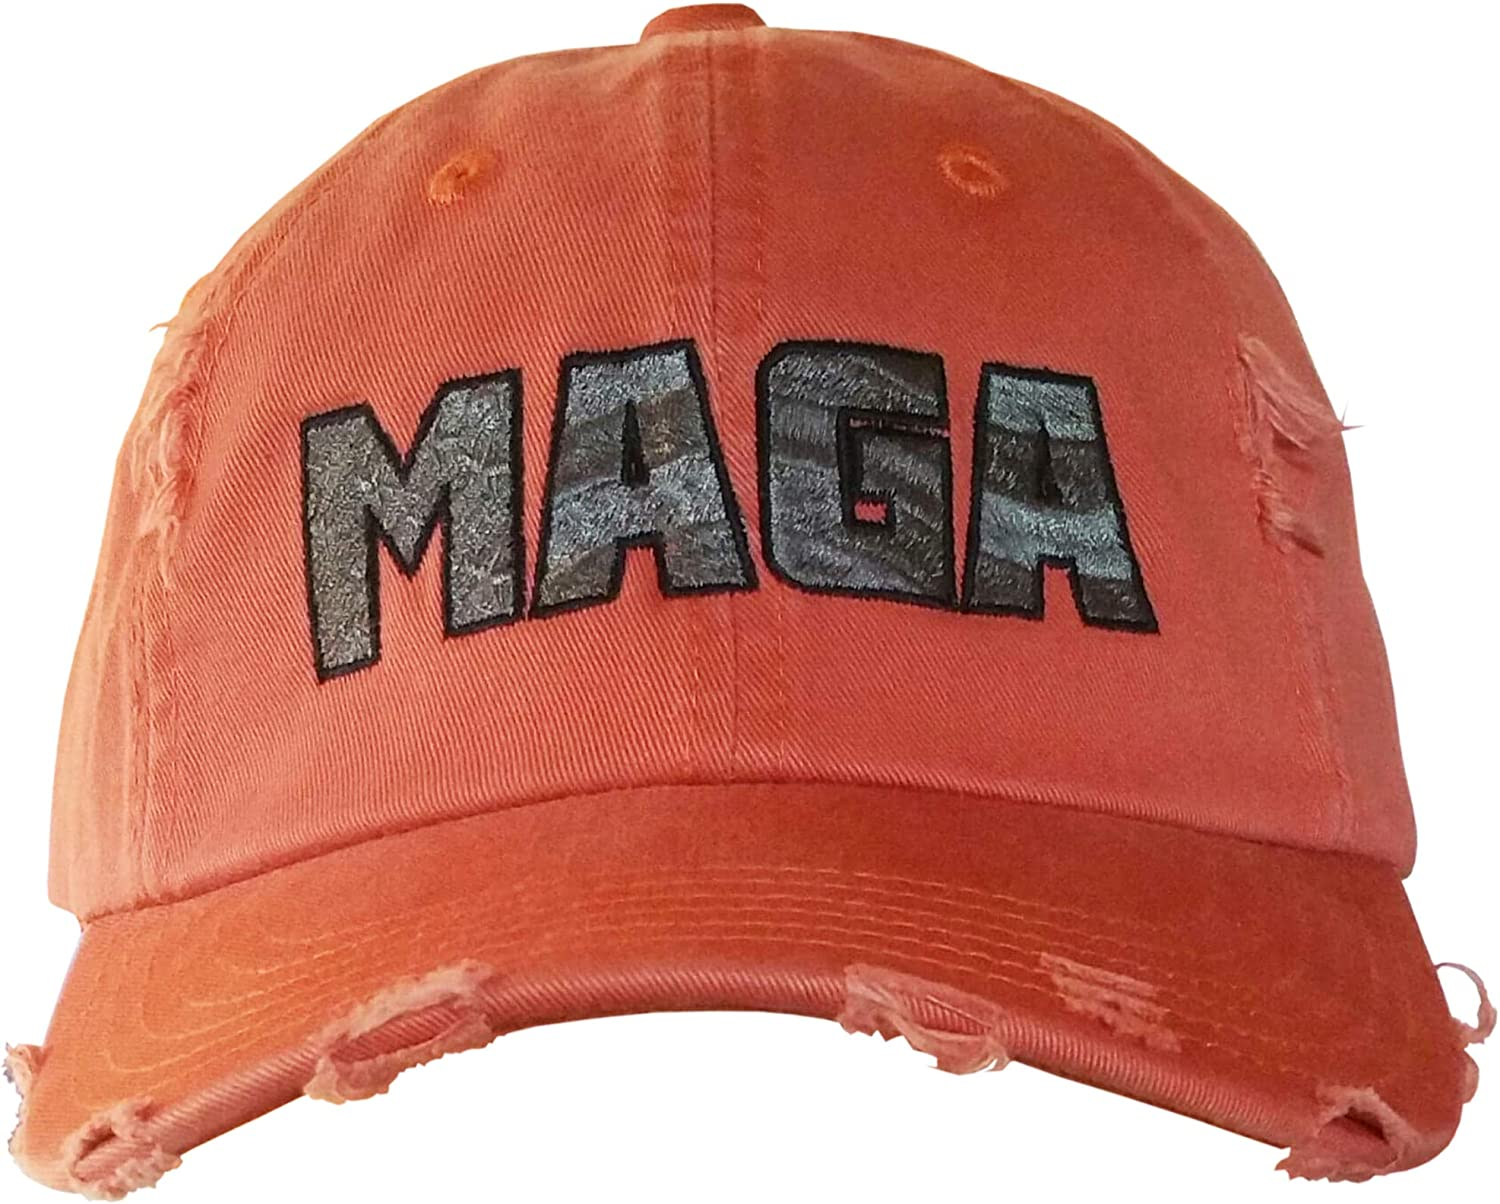 MAGA Hat - American Max 65% OFF Flag Trump Embossed Manufacturer direct delivery in OrangeRip Cap